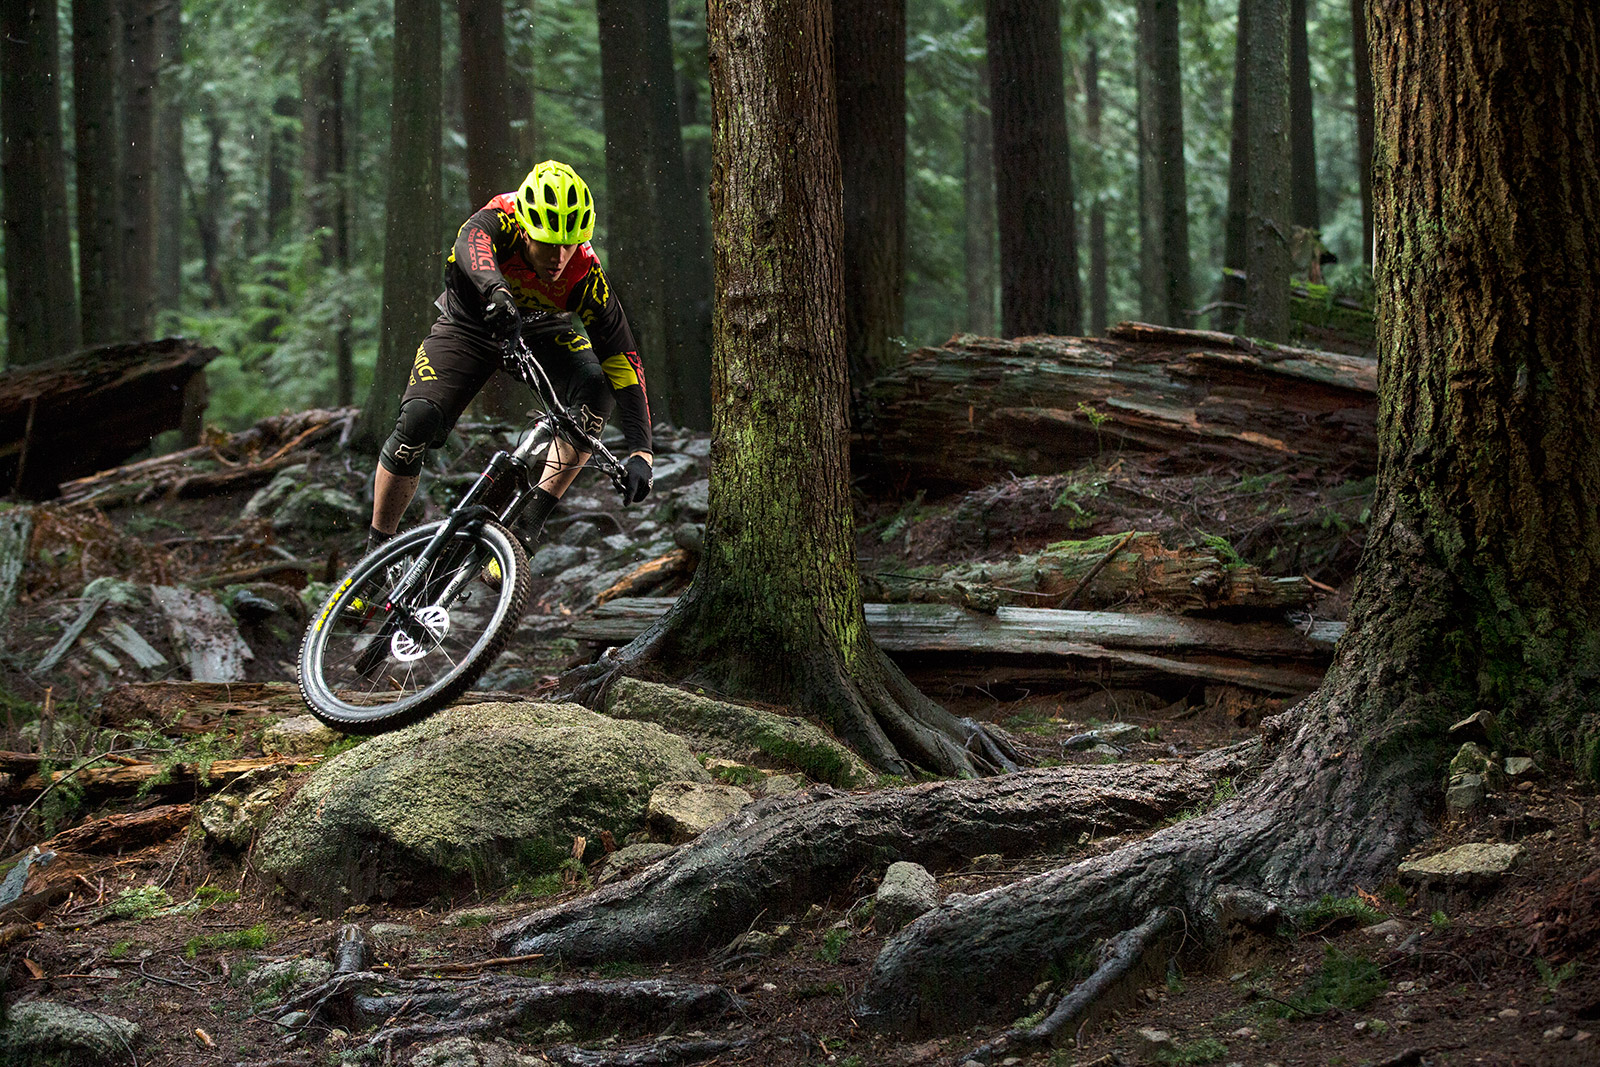 The new Turbine R wheelset is tough enough for the Devinci Global Racing squad, but light enough for trail use.